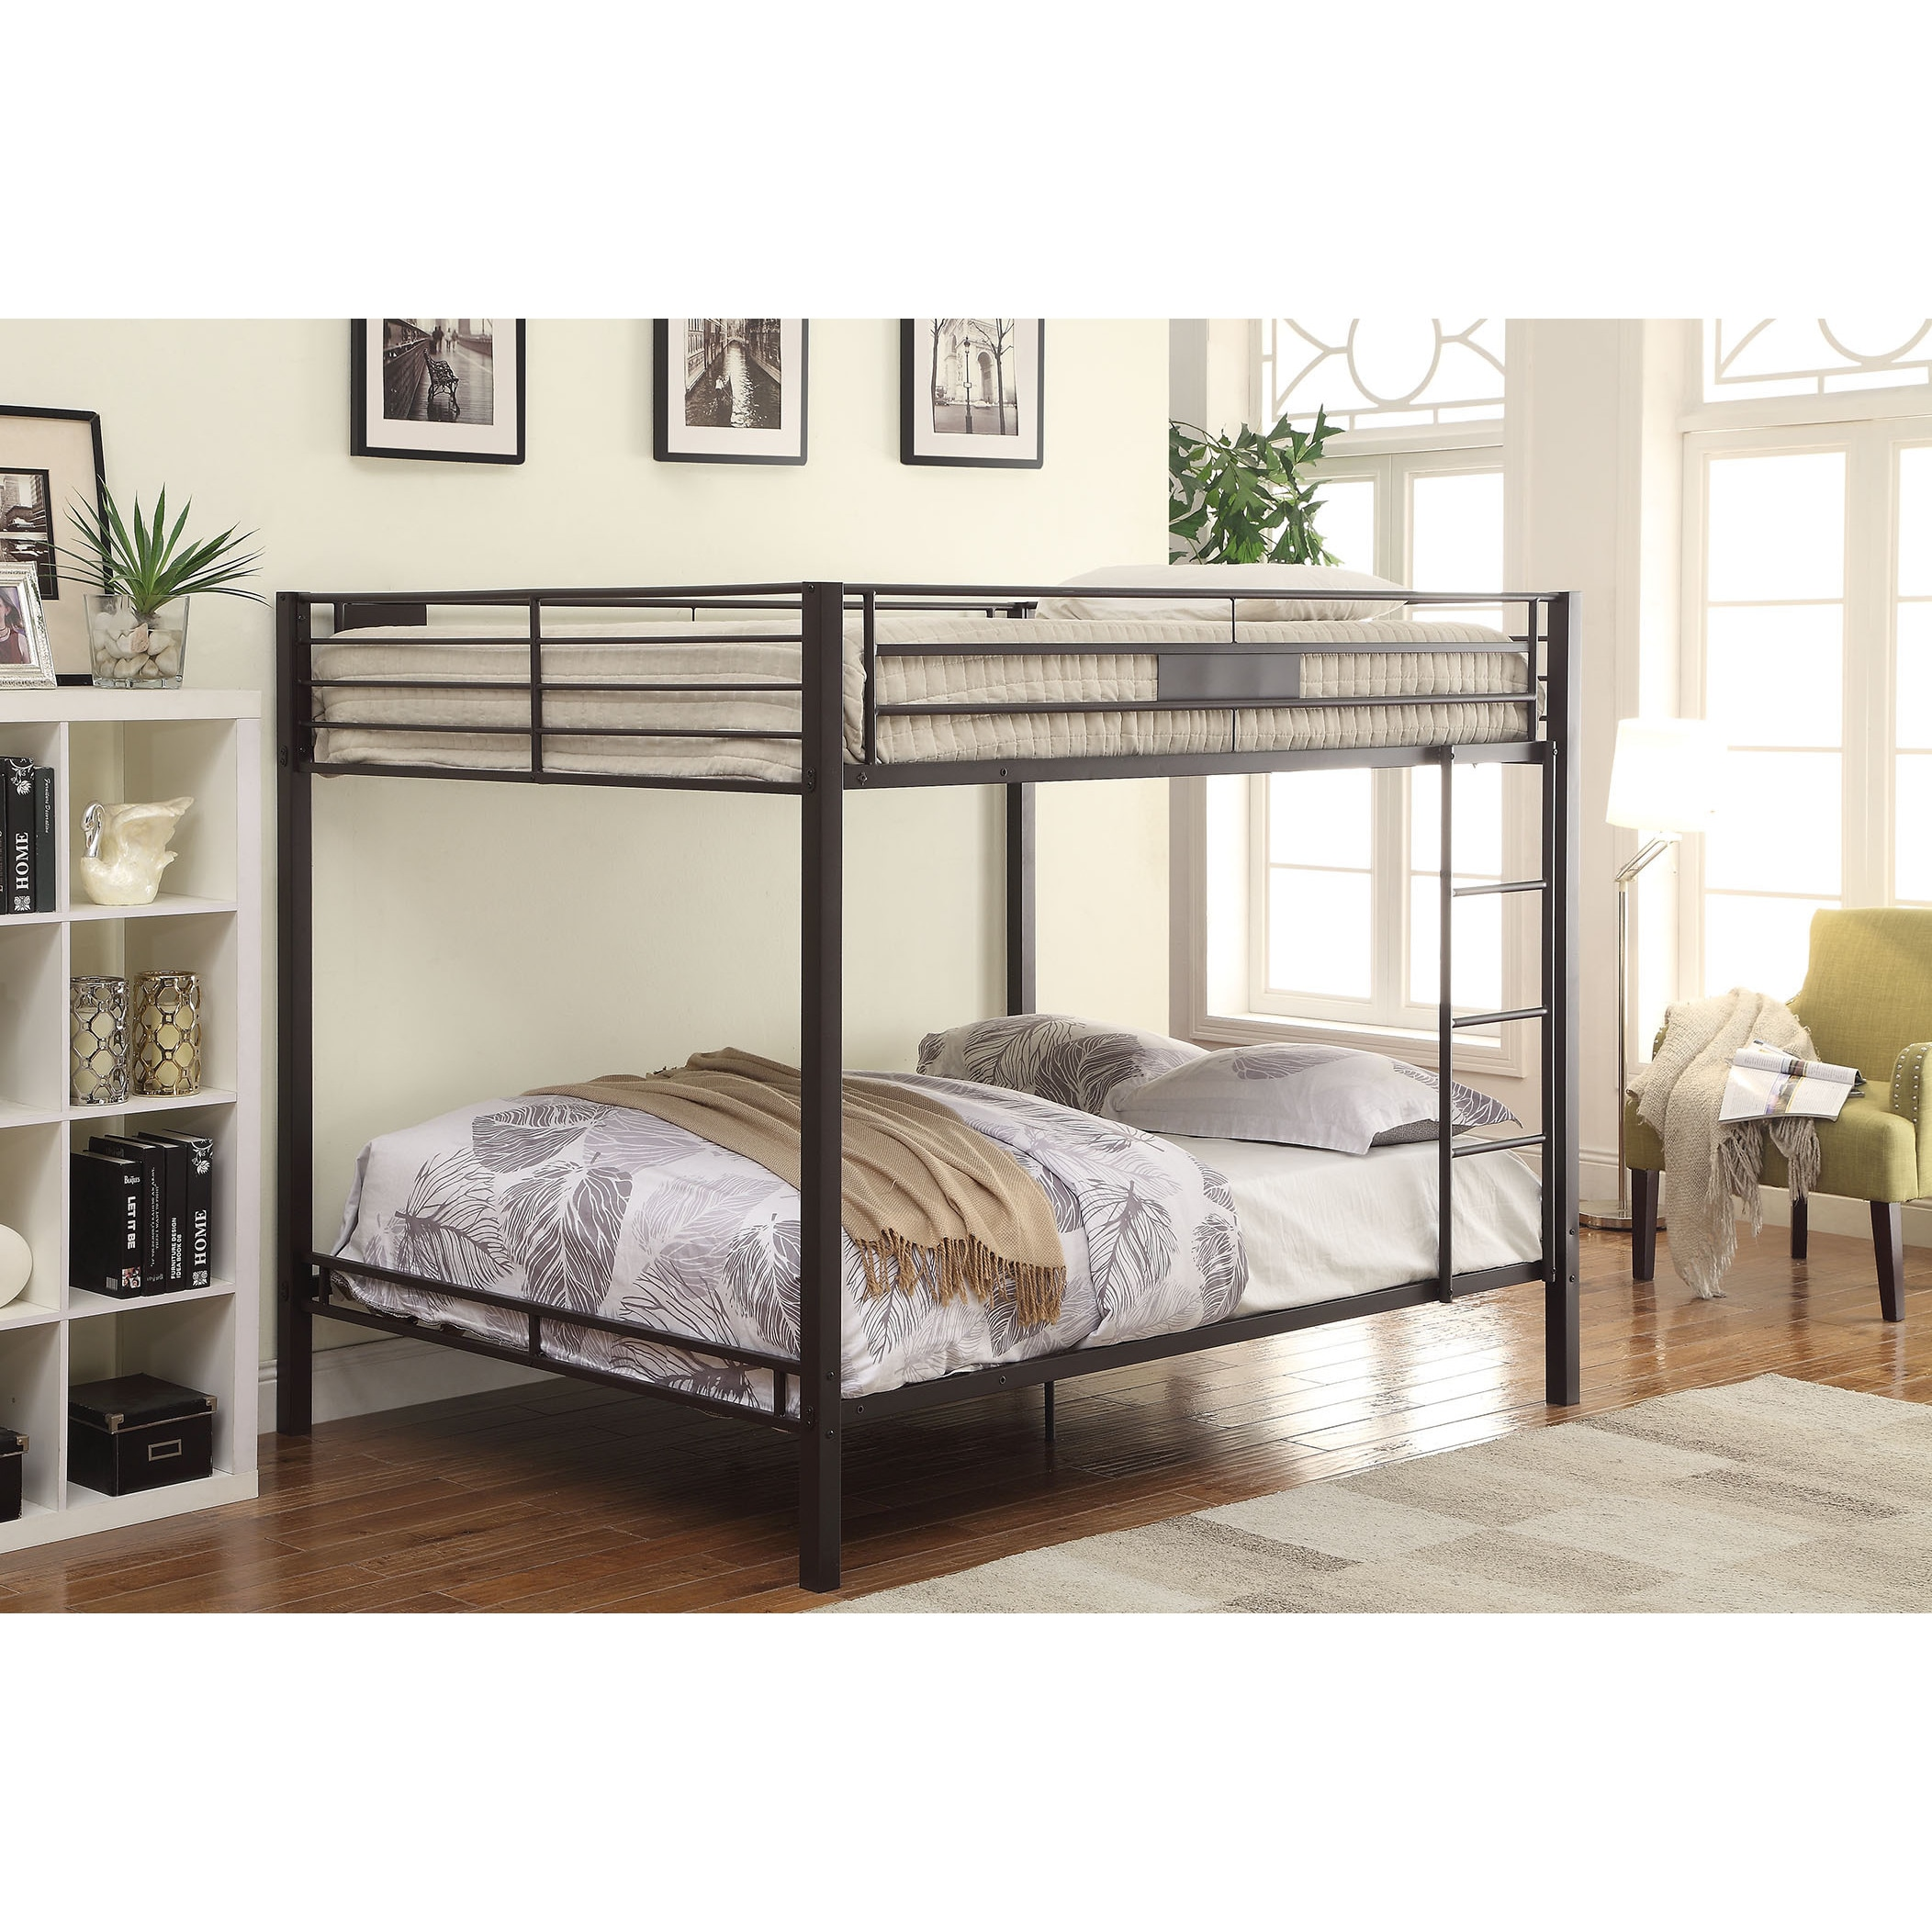 Shop Kaleb Black Sand Finish Queen Bunk Bed - Free Shipping Today ...